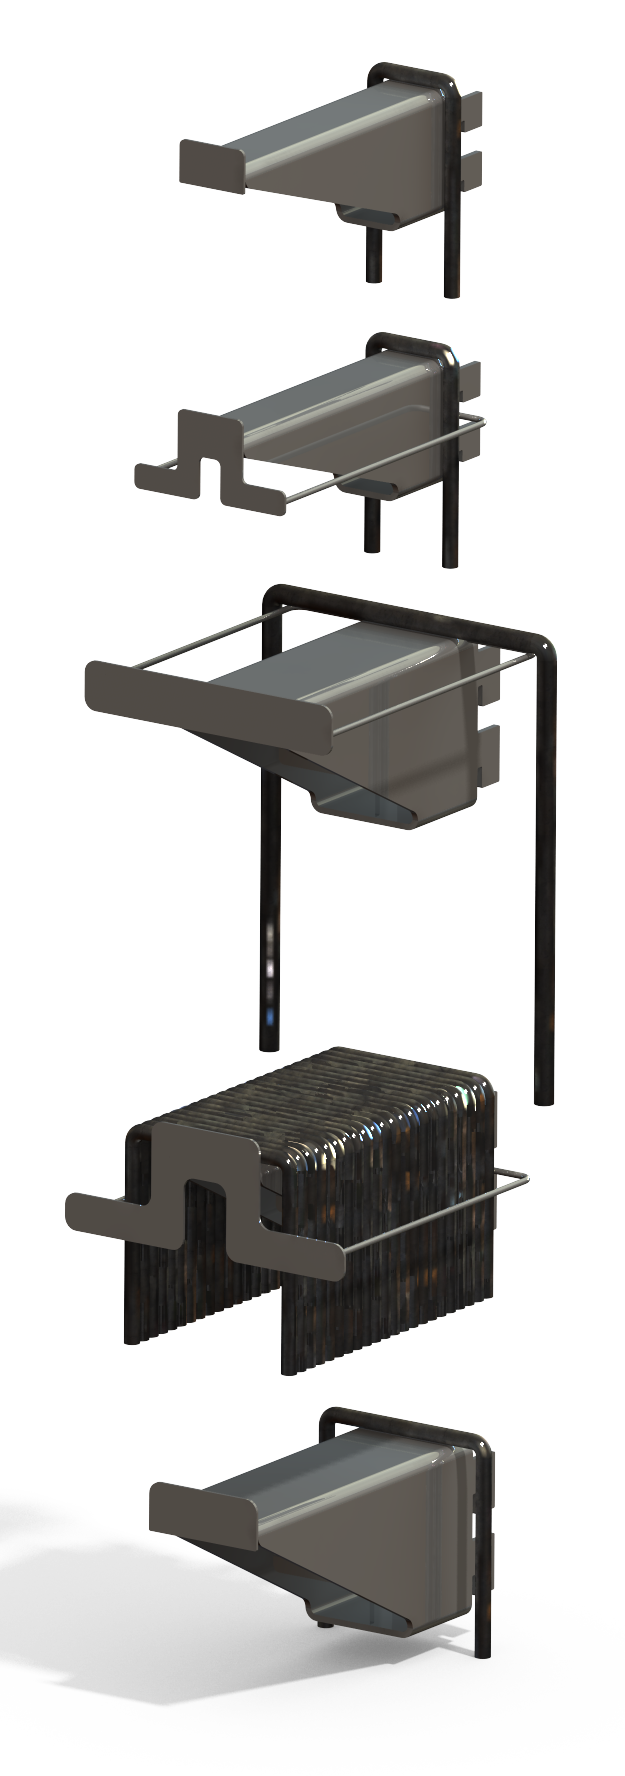 U-Bolt Rack Module Set - Designed in SolidWorks - Kris Bunda